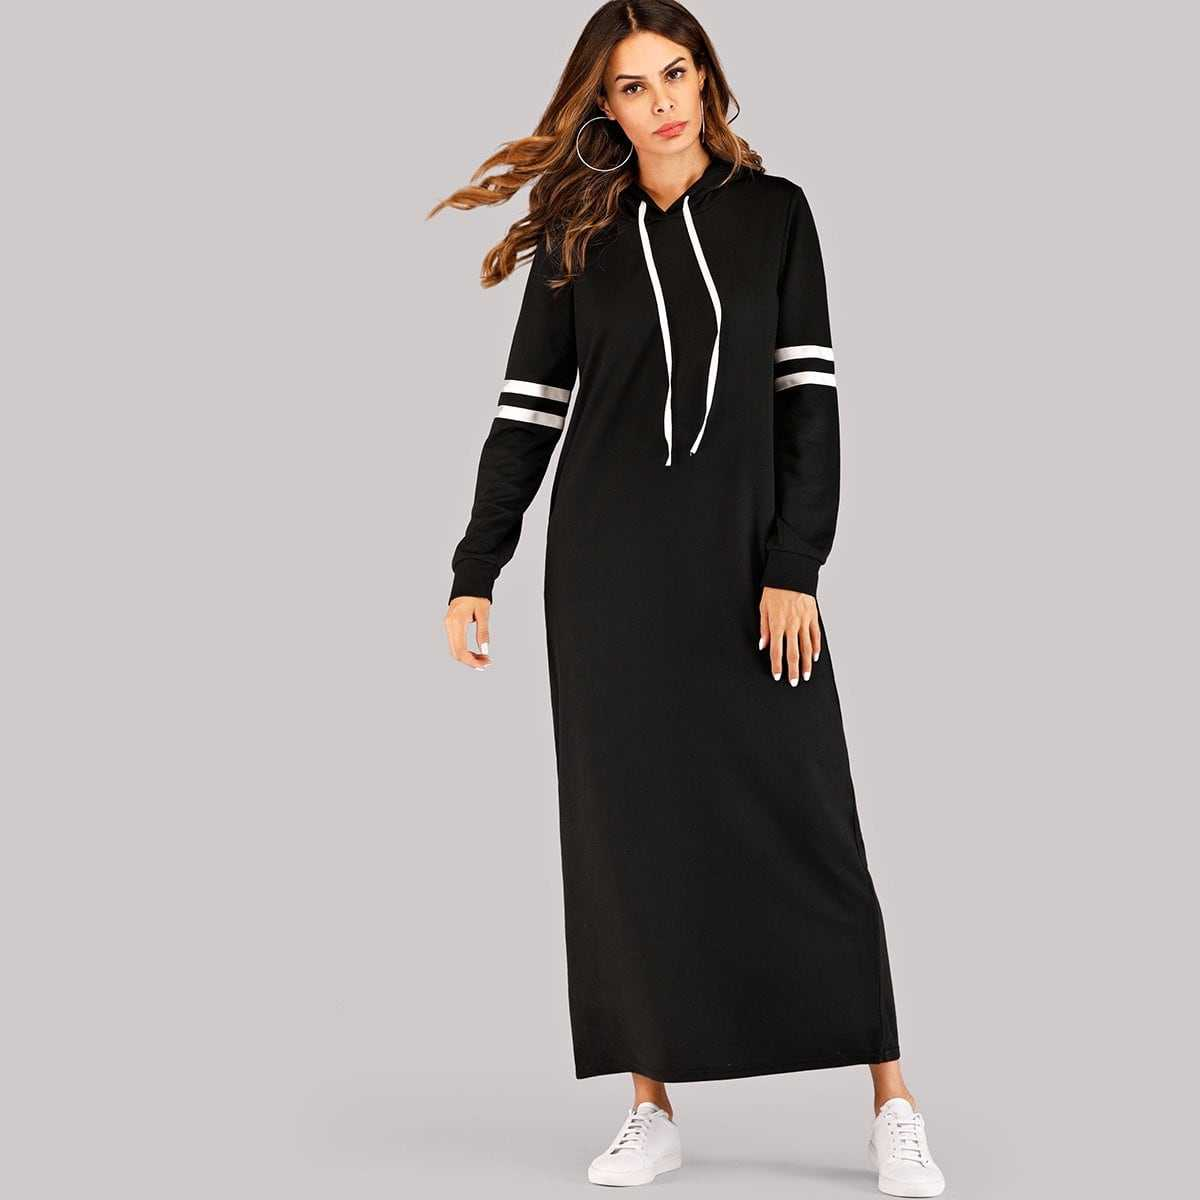 Varsity Striped Hooded Maxi Sweatshirt Dress in Black by ROMWE on GOOFASH